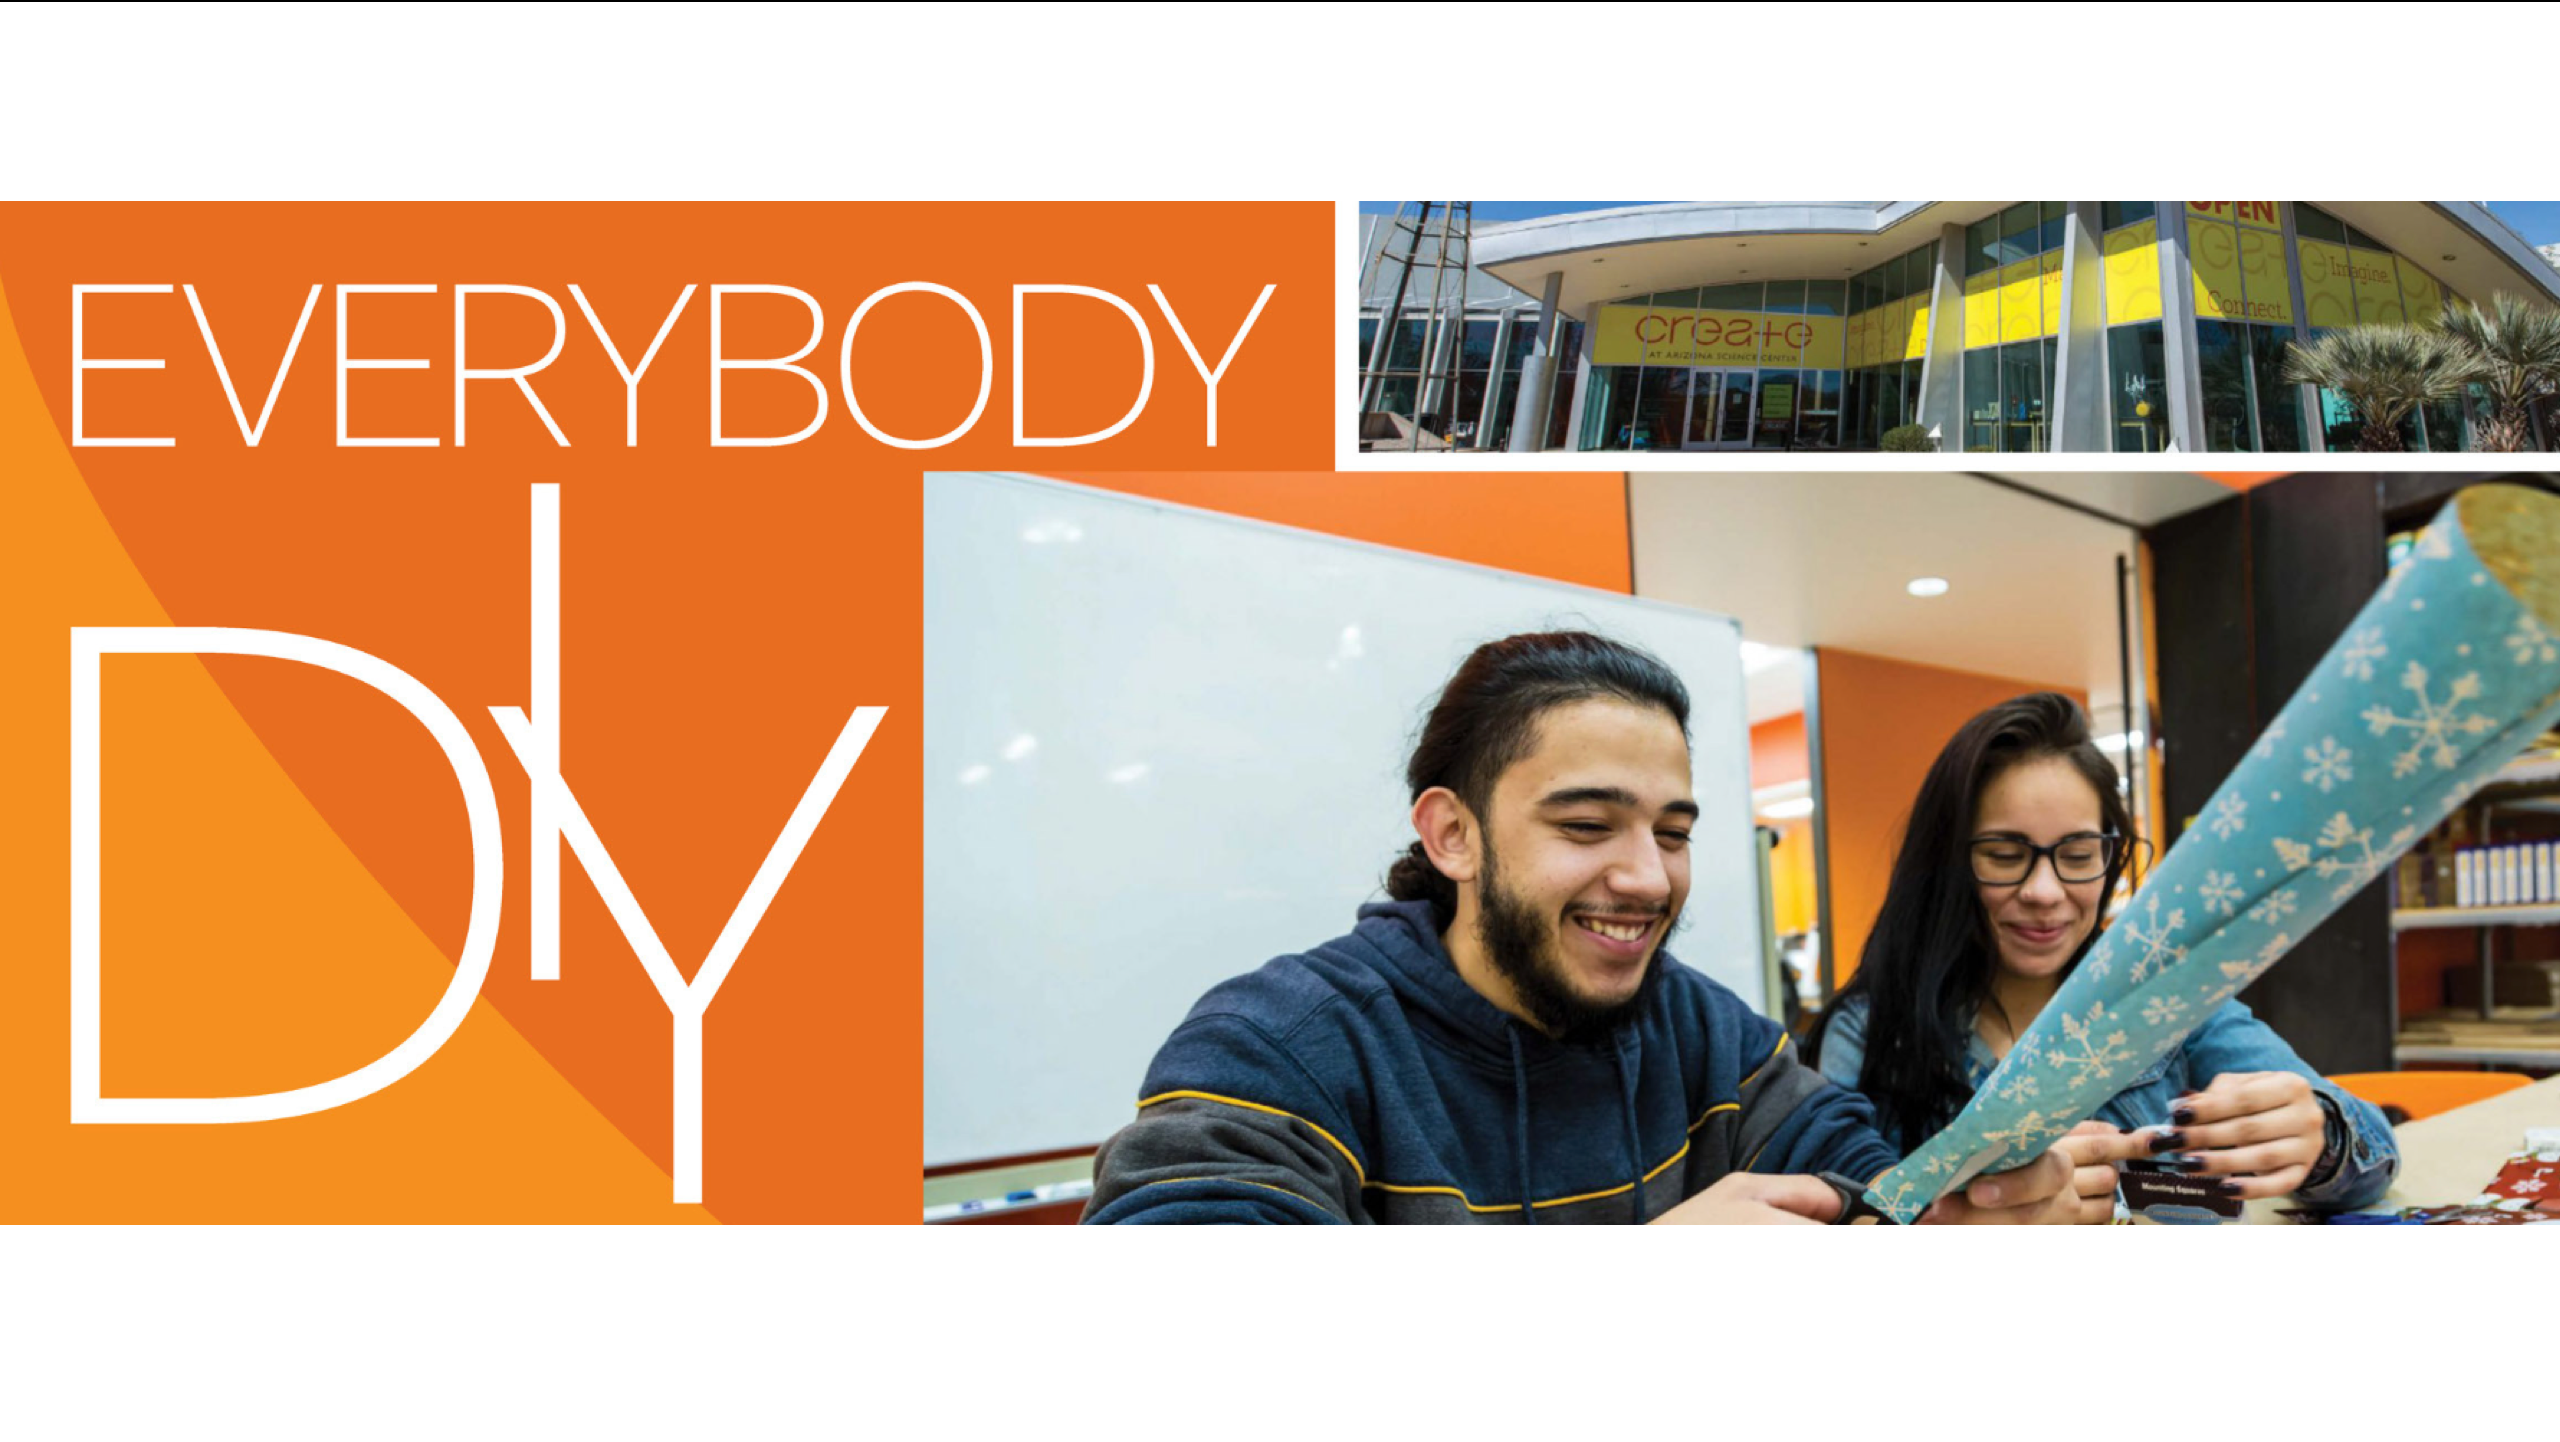 "A composite image made up of three components: the first, a left-aligned graphic of the article title, ""Everybody DIY"" in white text on an orange background; second, an image in the top right corner of the Arizona Science Center's front entrance advertising their ""CREATE"" exhibition with a long, horizontal decal across the top of their front entrance which has many windows and is mostly glass; and third, an image in the bottom right corner of a young man and young woman sitting down, smiling, and cutting a roll of blue wrapping paper with white snowflakes with scissors."